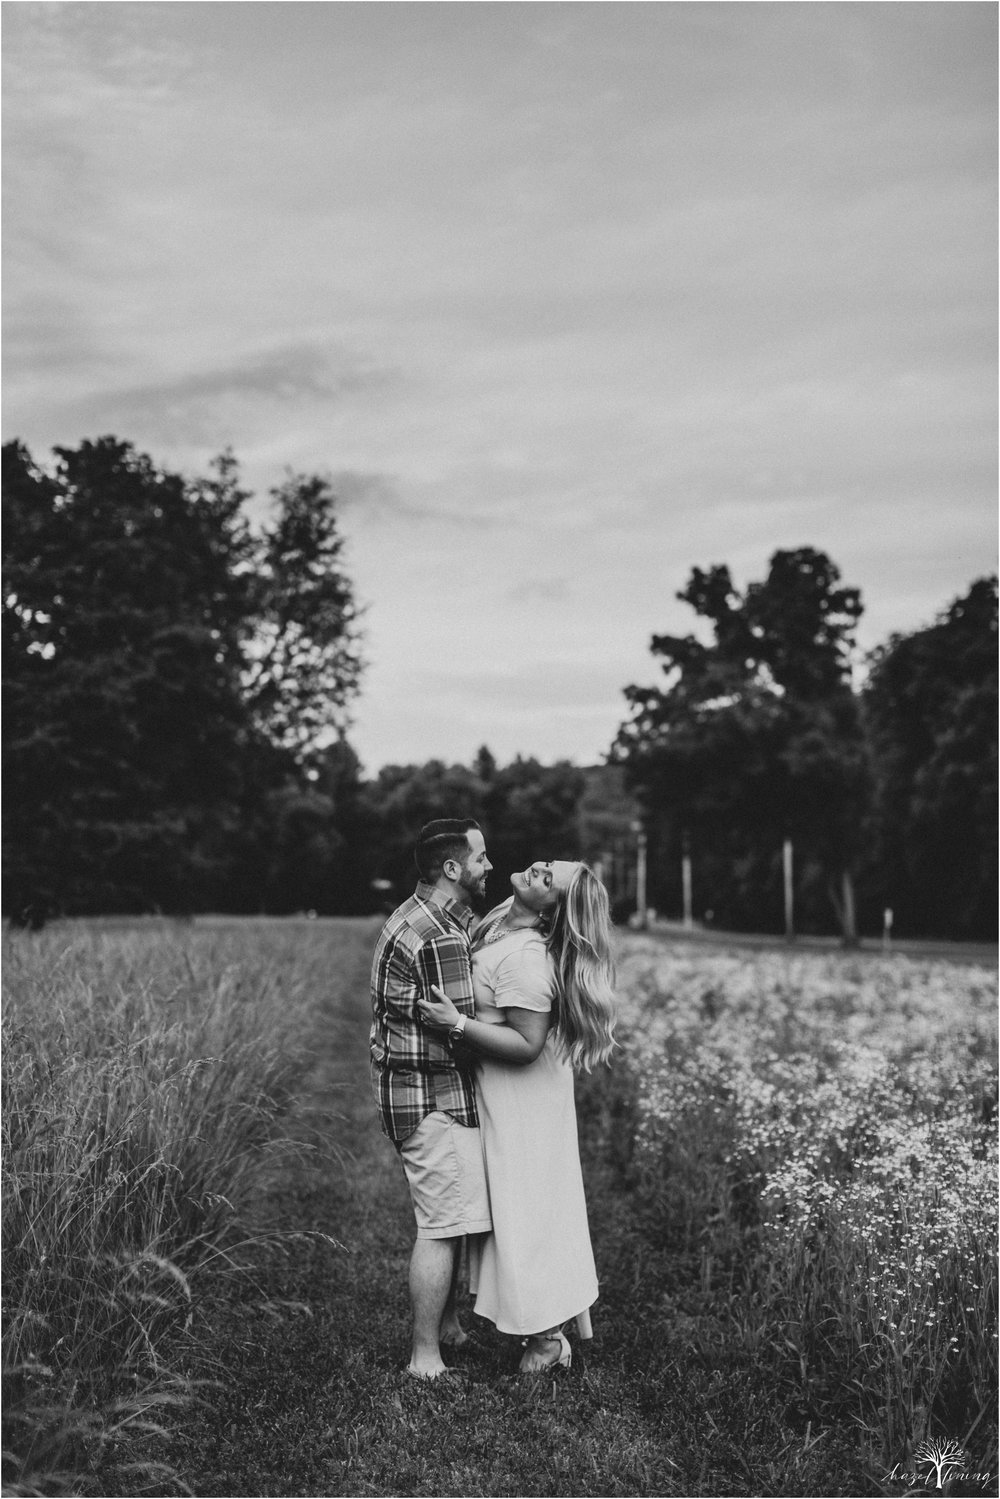 mel-mnich-john-butler-marietta-furnace-engagement-session-lancaster-county-pennsylvania-hazel-lining-travel-wedding-elopement-photography_0235.jpg